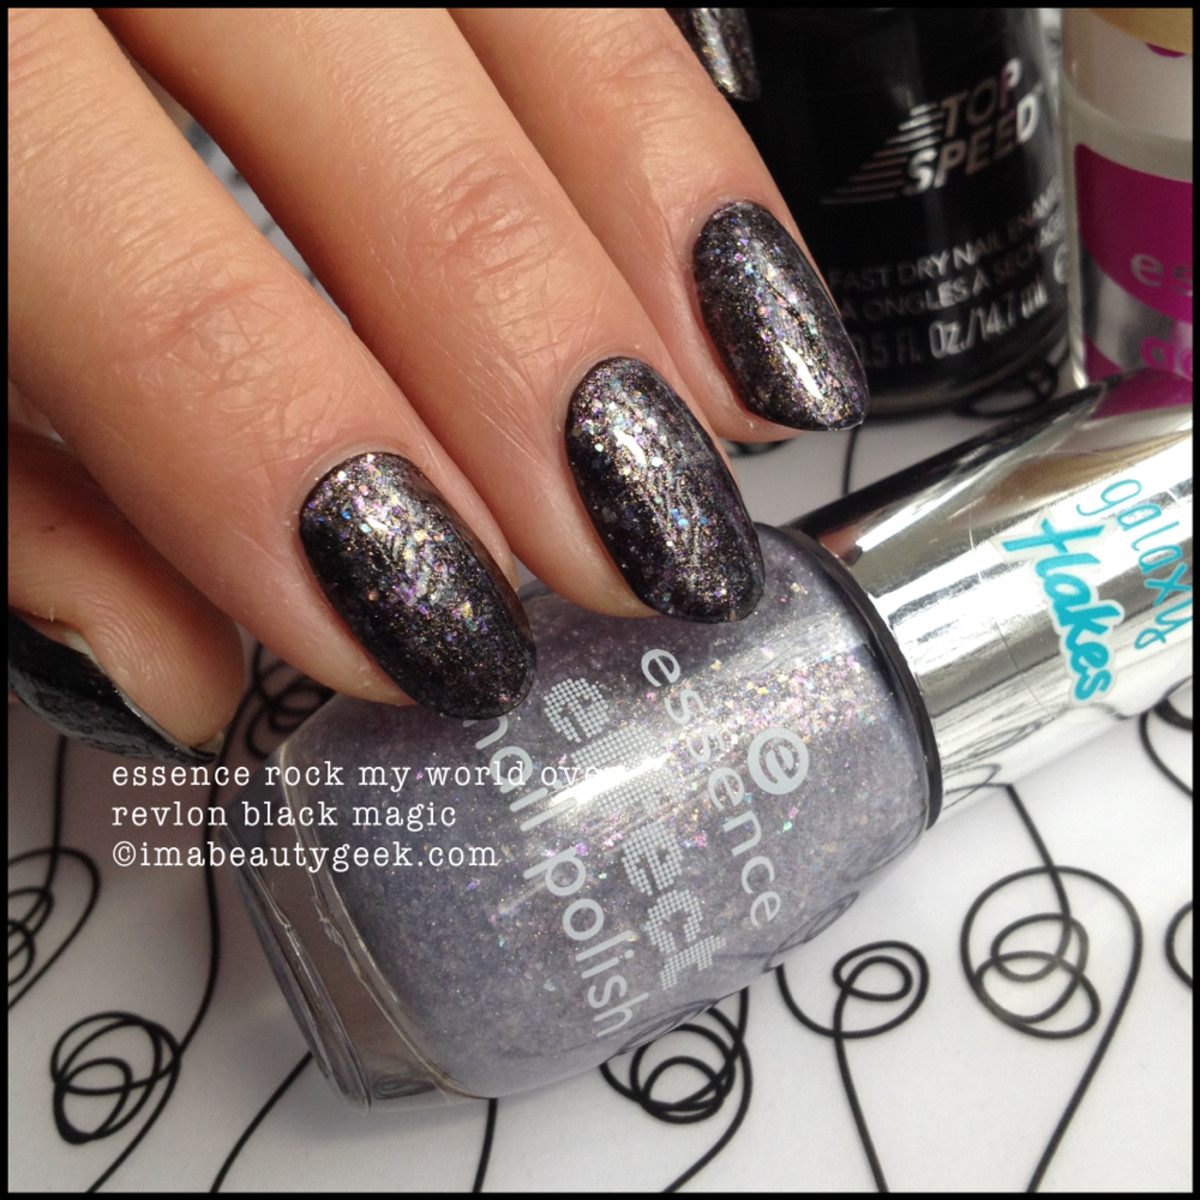 Essence Rock My World Galaxy Flakes over Black Magic